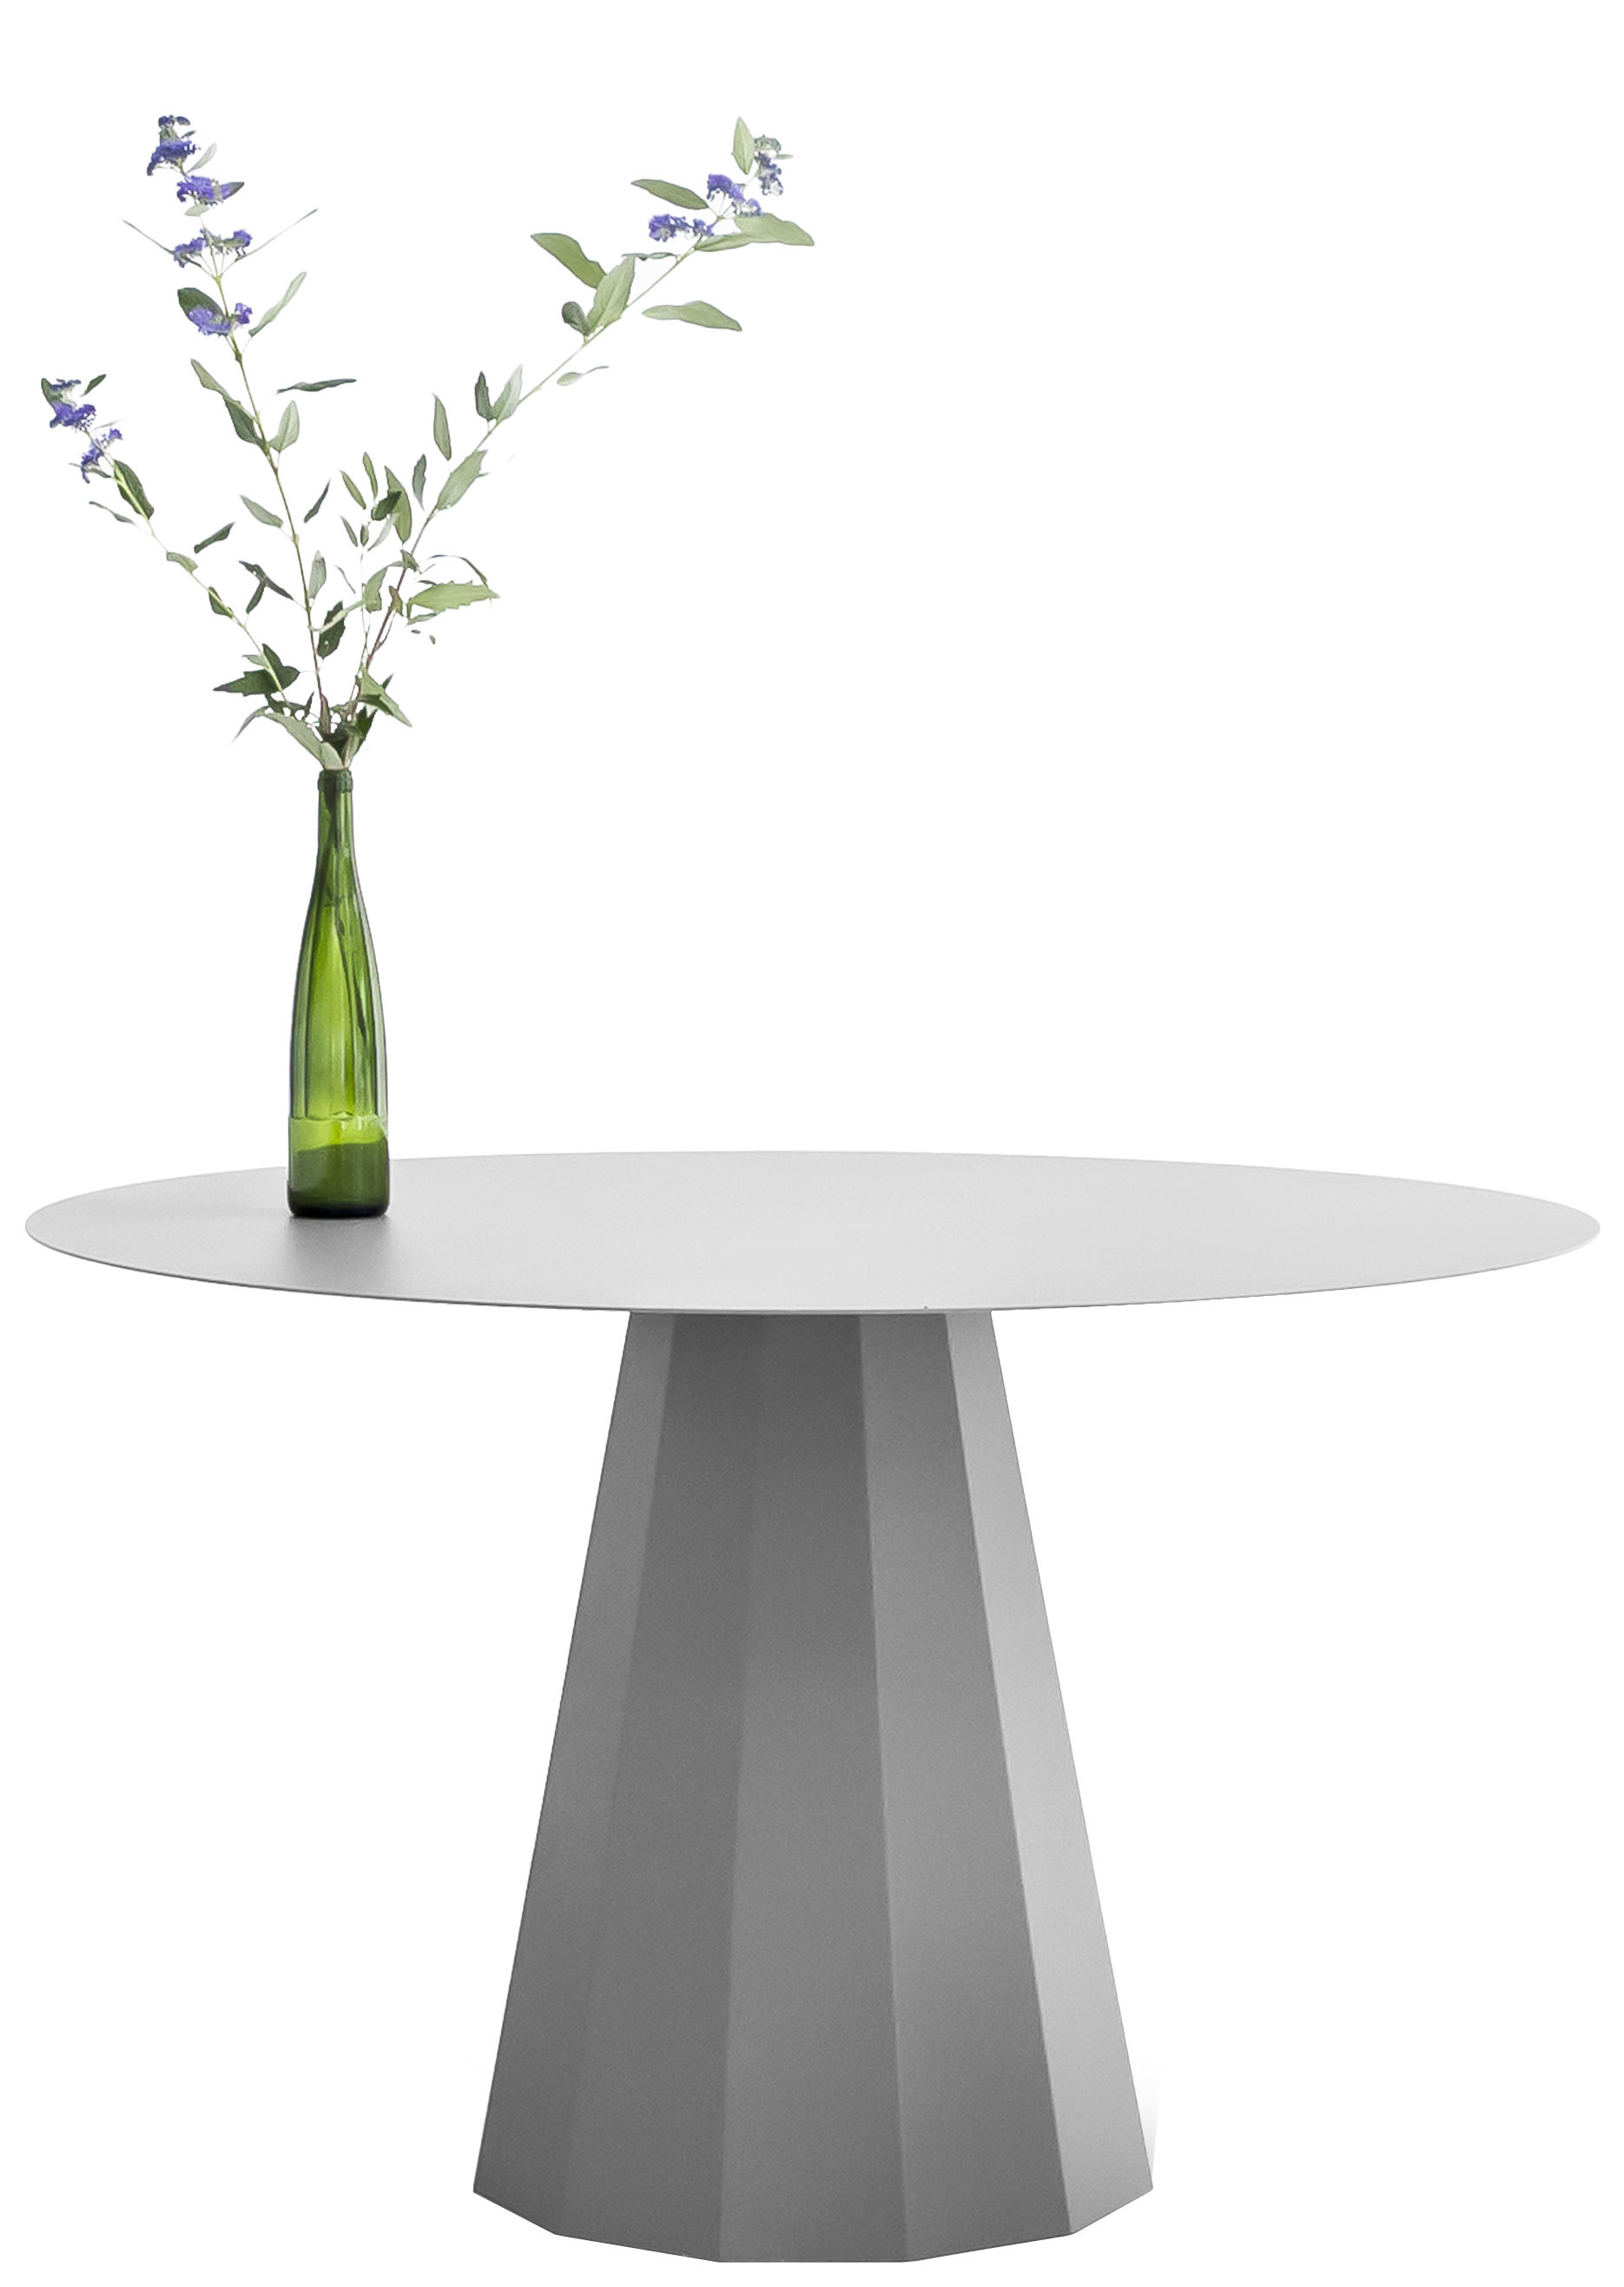 Trends - Take your seat! - Ankara L Round table by Matière Grise - Alu grey - Steel